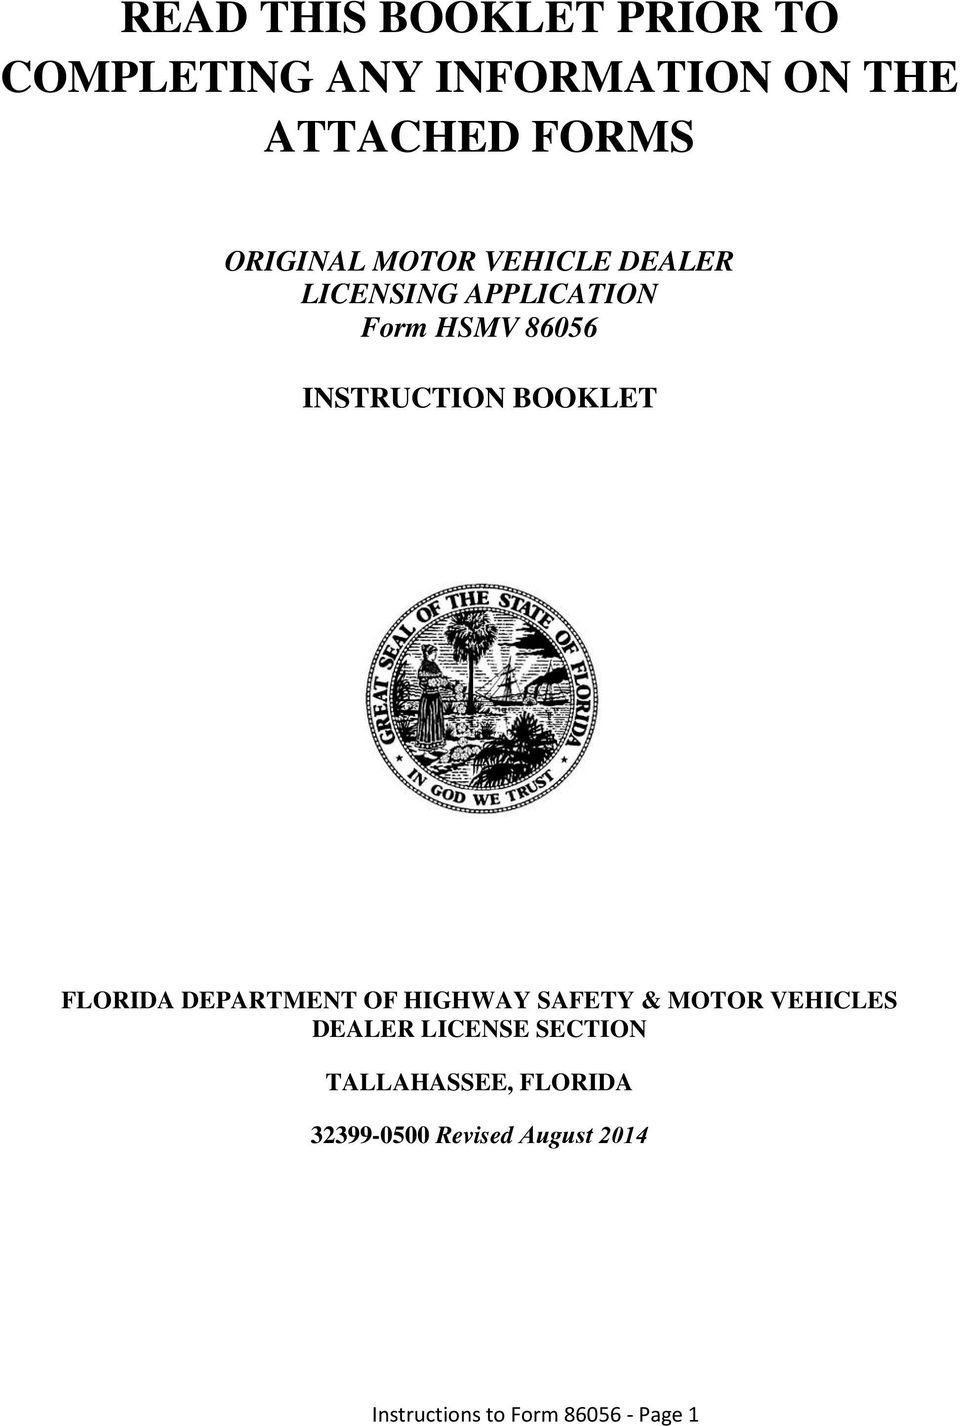 BOOKLET FLORIDA DEPARTMENT OF HIGHWAY SAFETY & MOTOR VEHICLES DEALER LICENSE